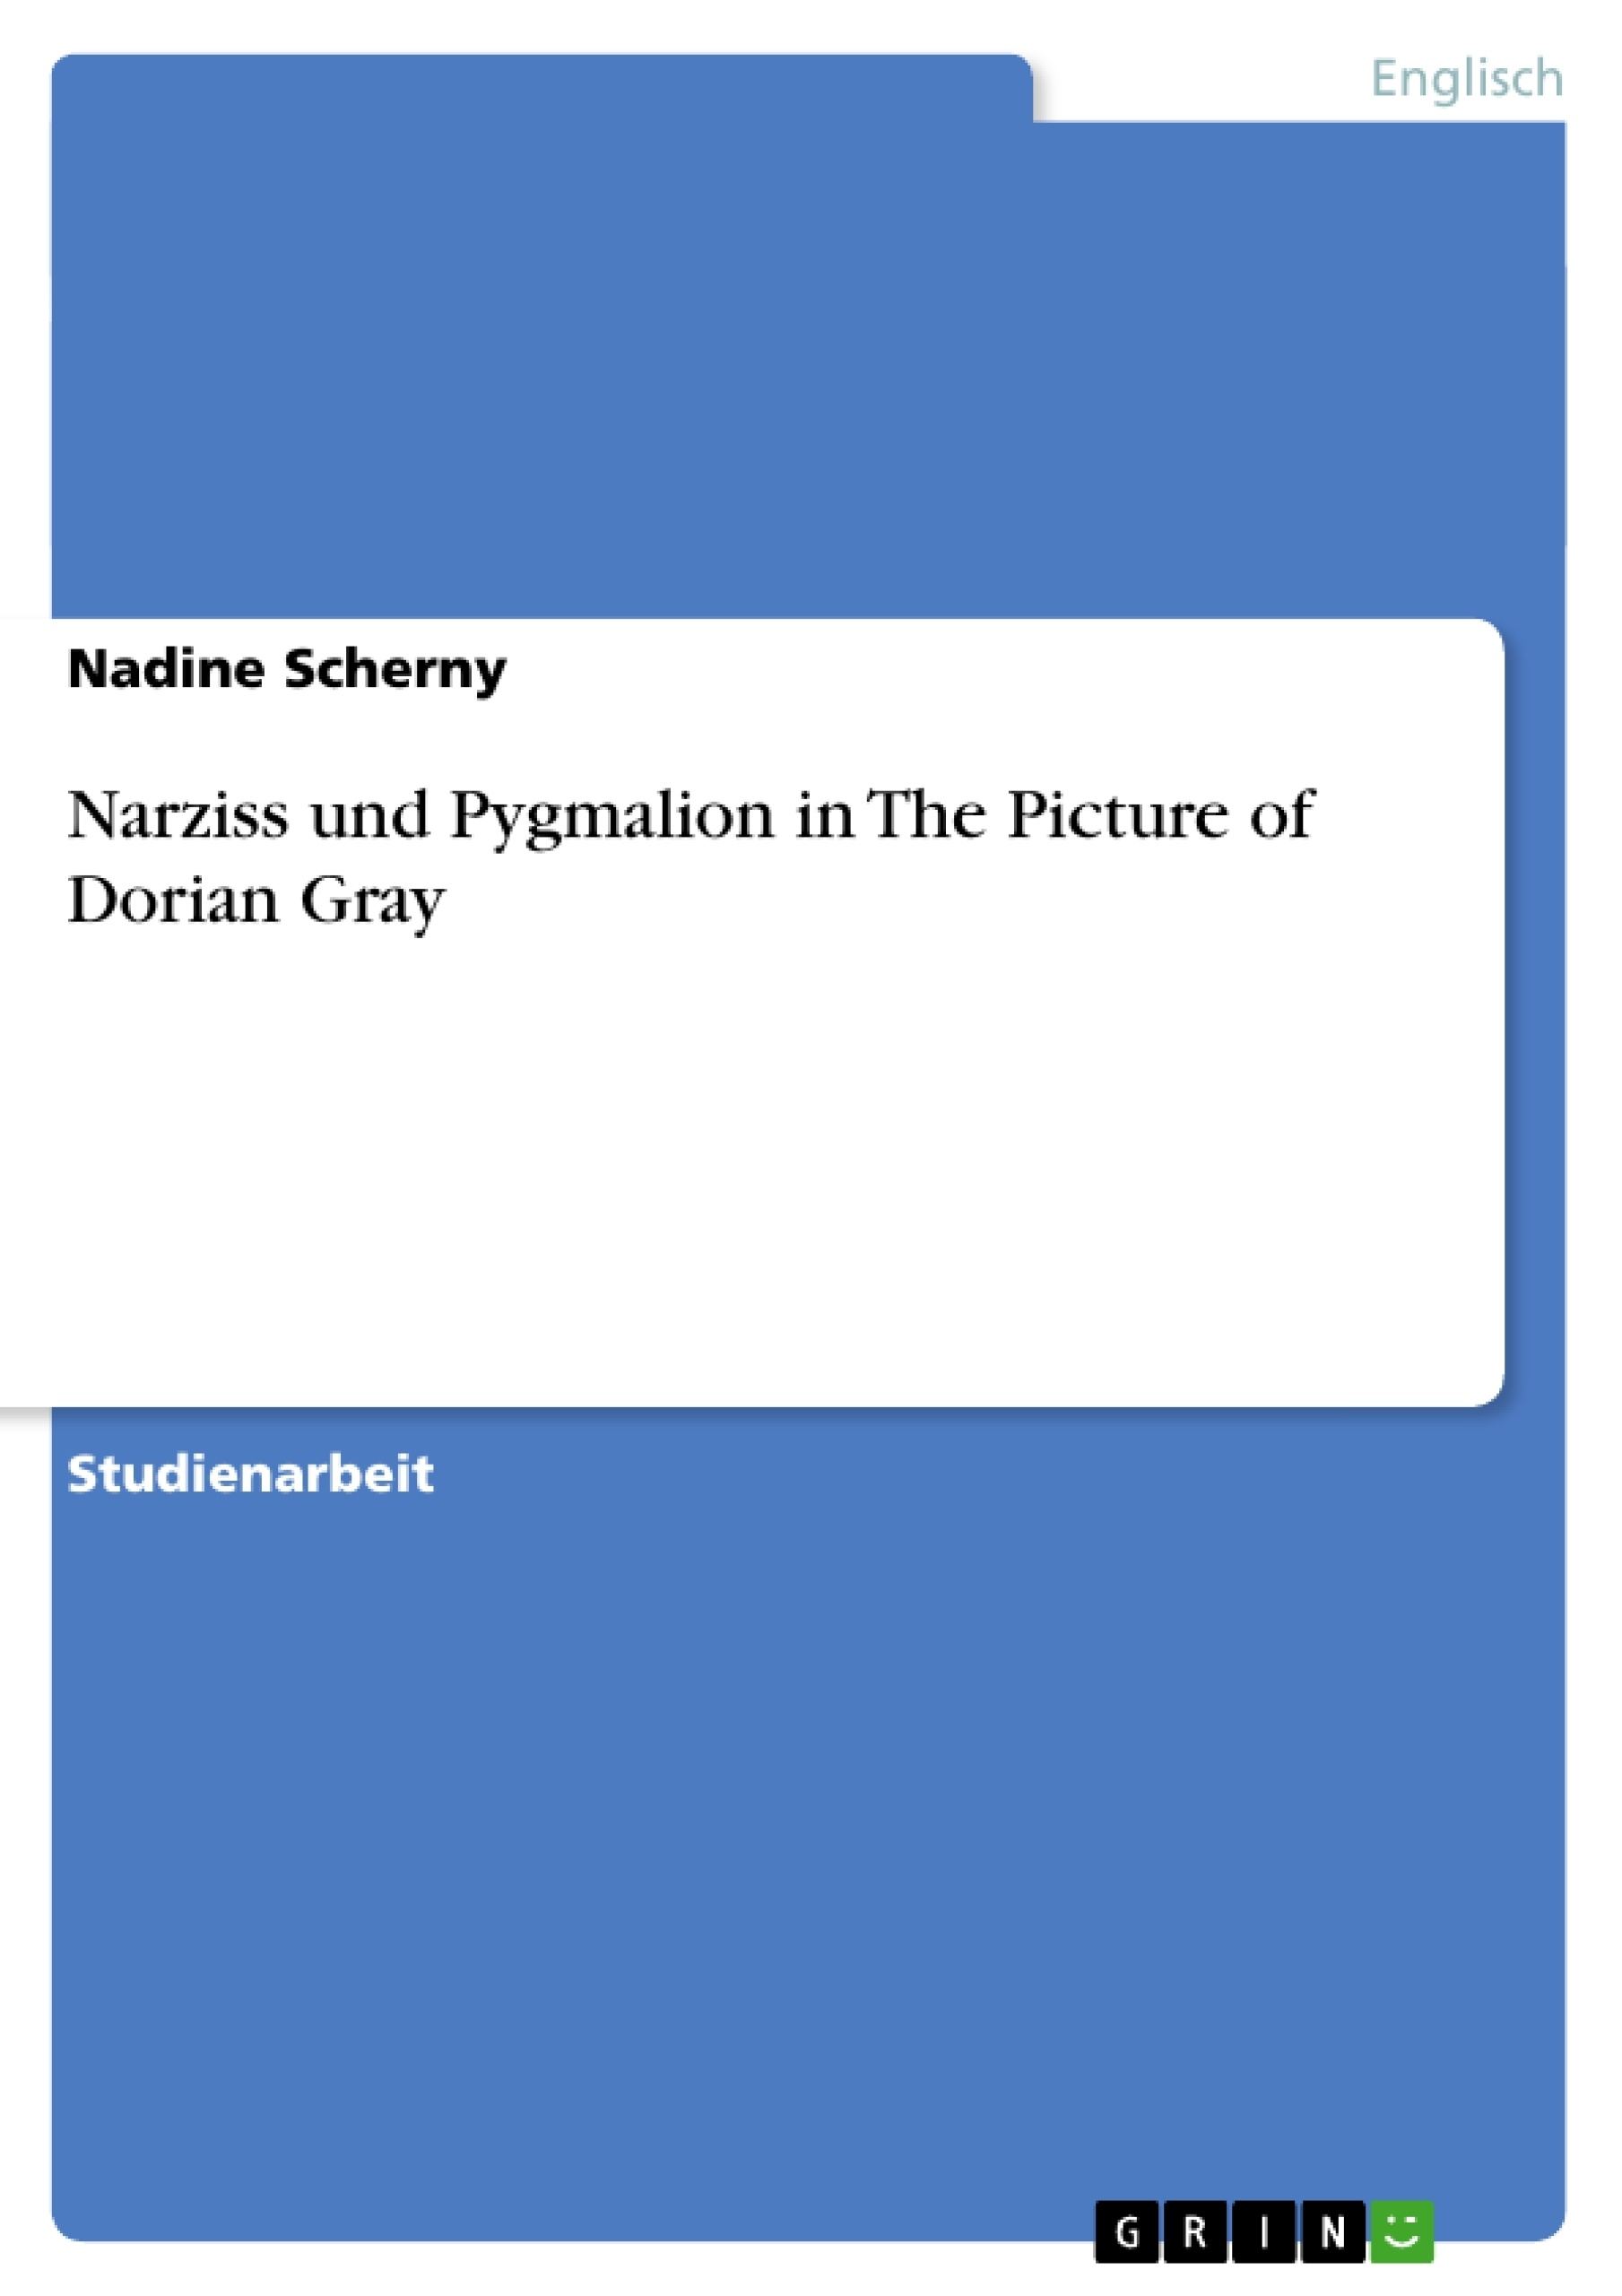 Titel: Narziss und Pygmalion in The Picture of Dorian Gray